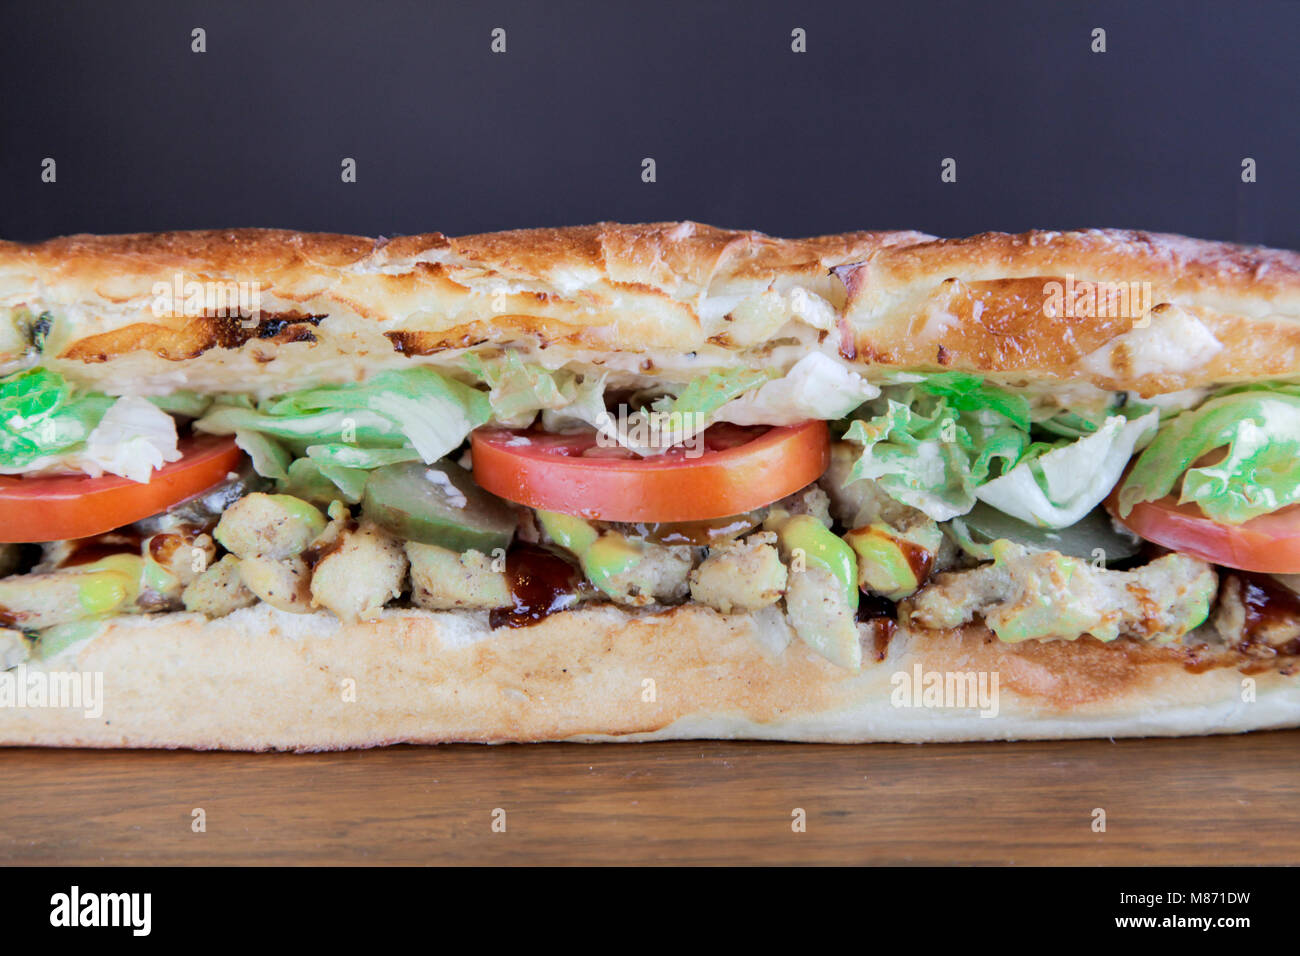 Closeup of large hoagie sandwich - Stock Image